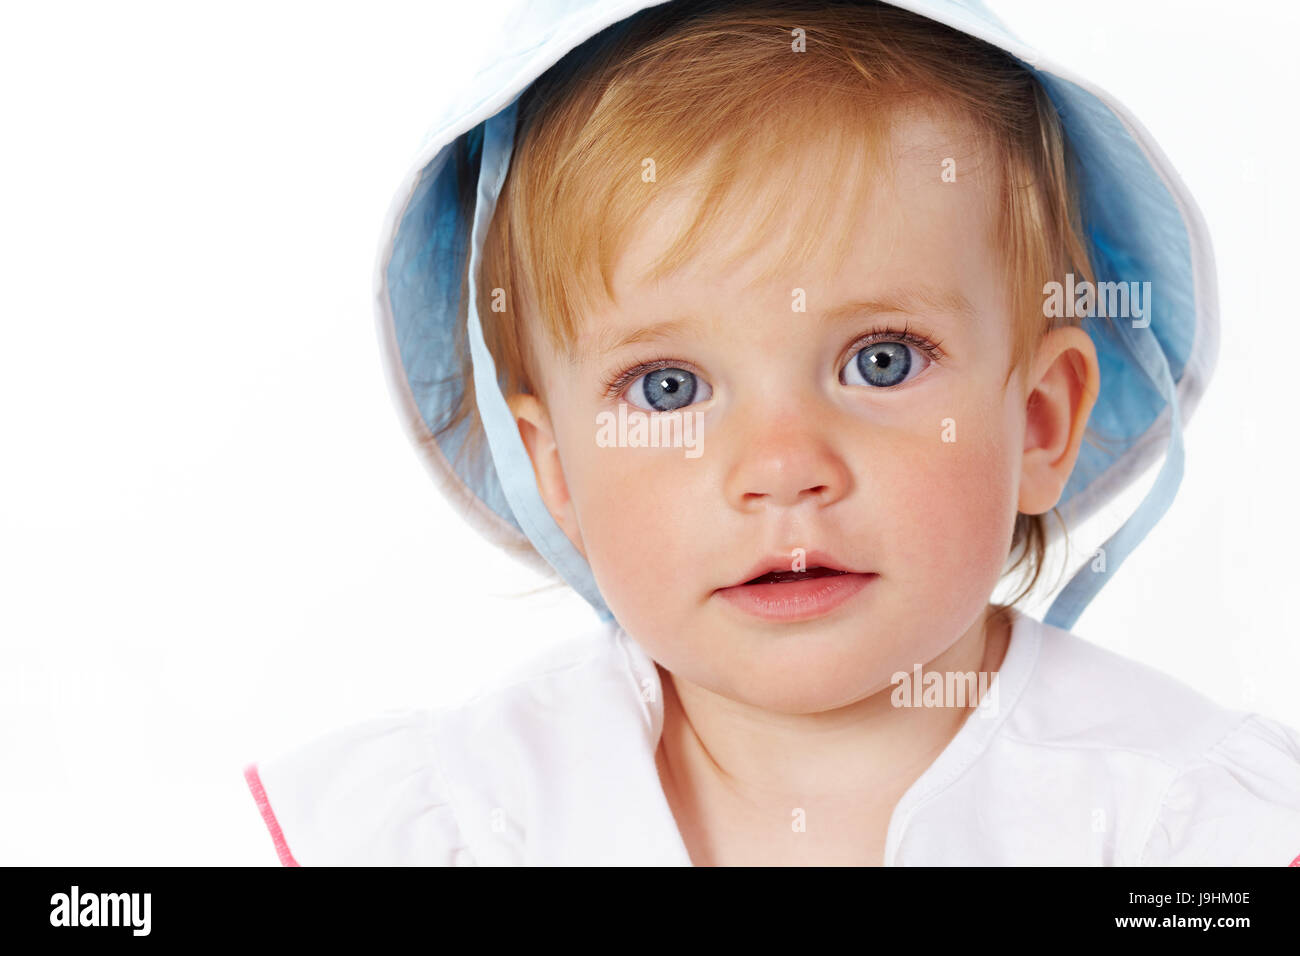 humans, human beings, people, folk, persons, human, human being, sweet, - Stock Image